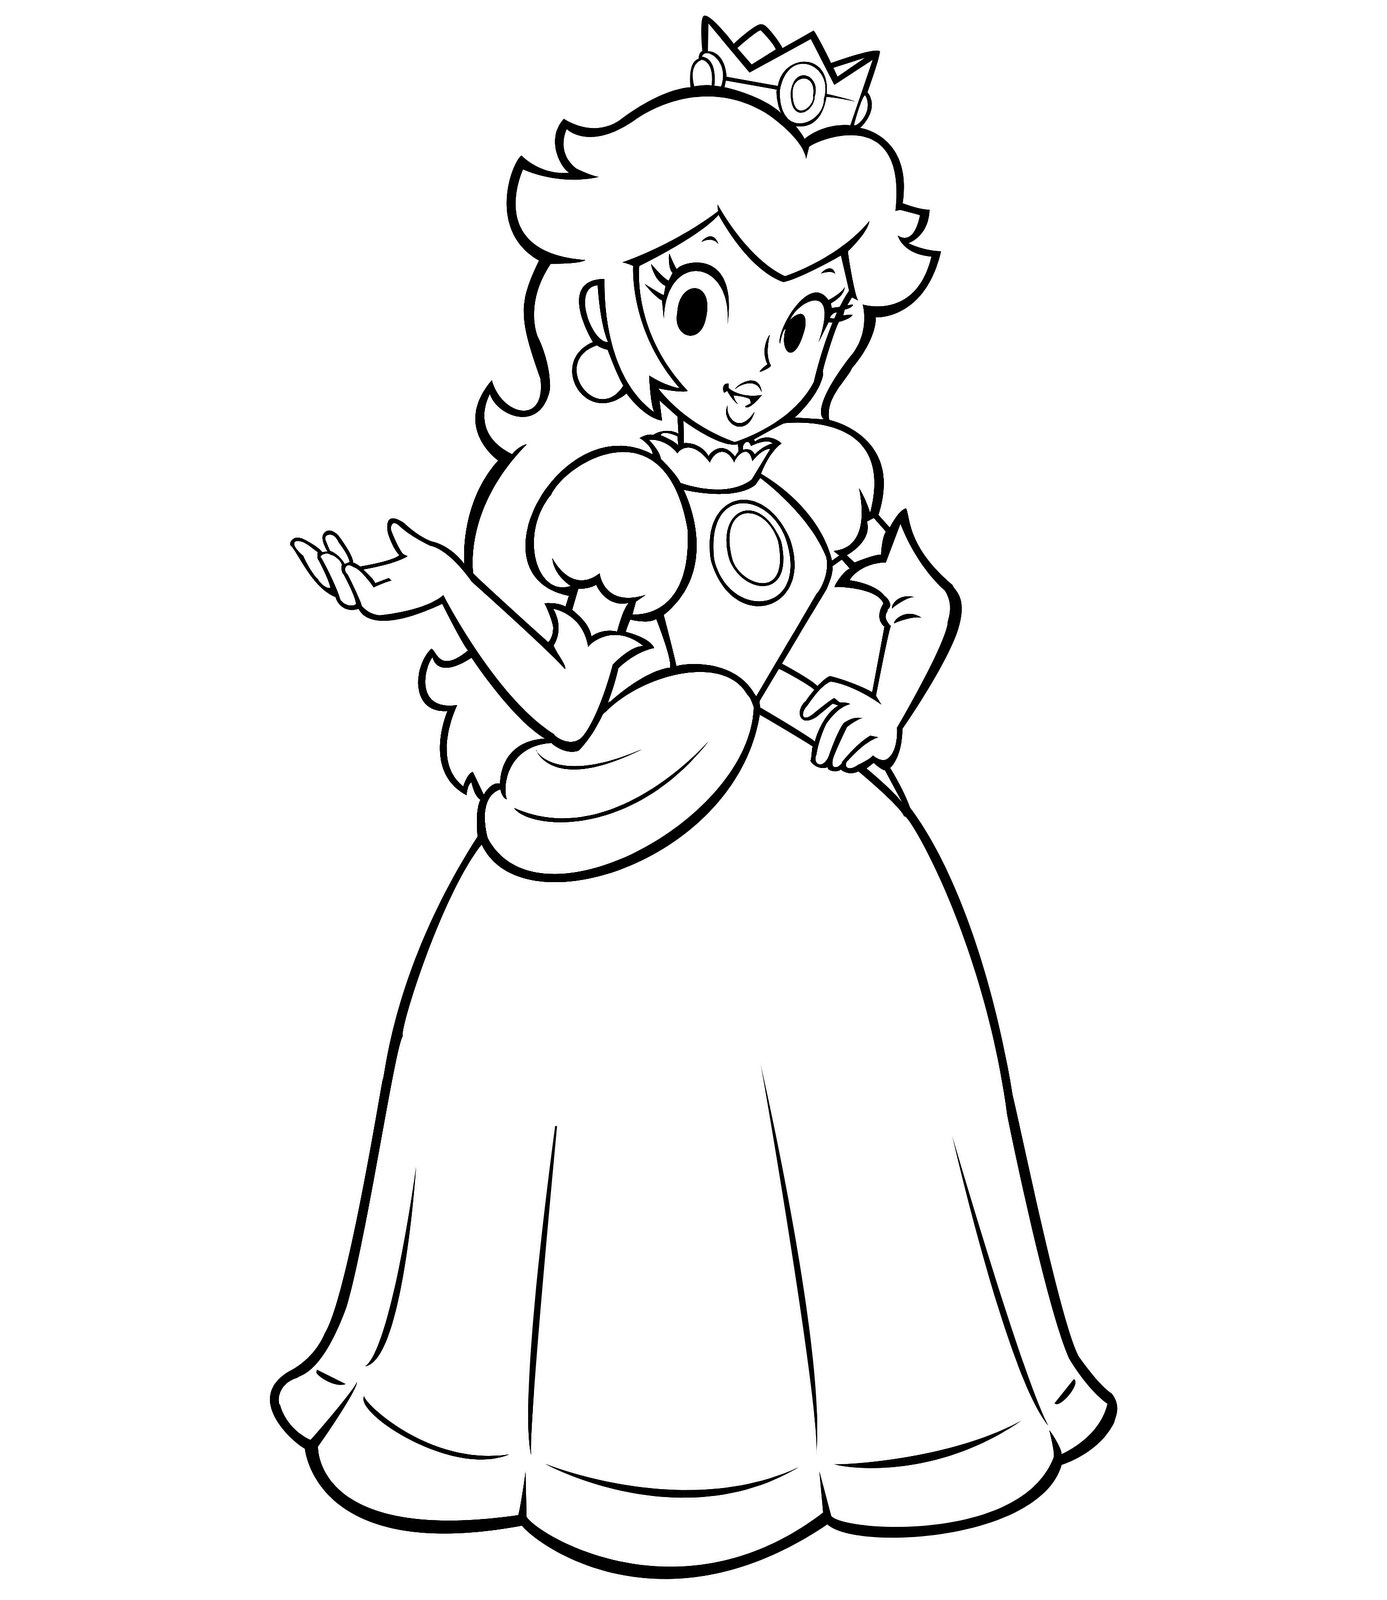 Free princess peach coloring pages for kids for Princess printable color pages